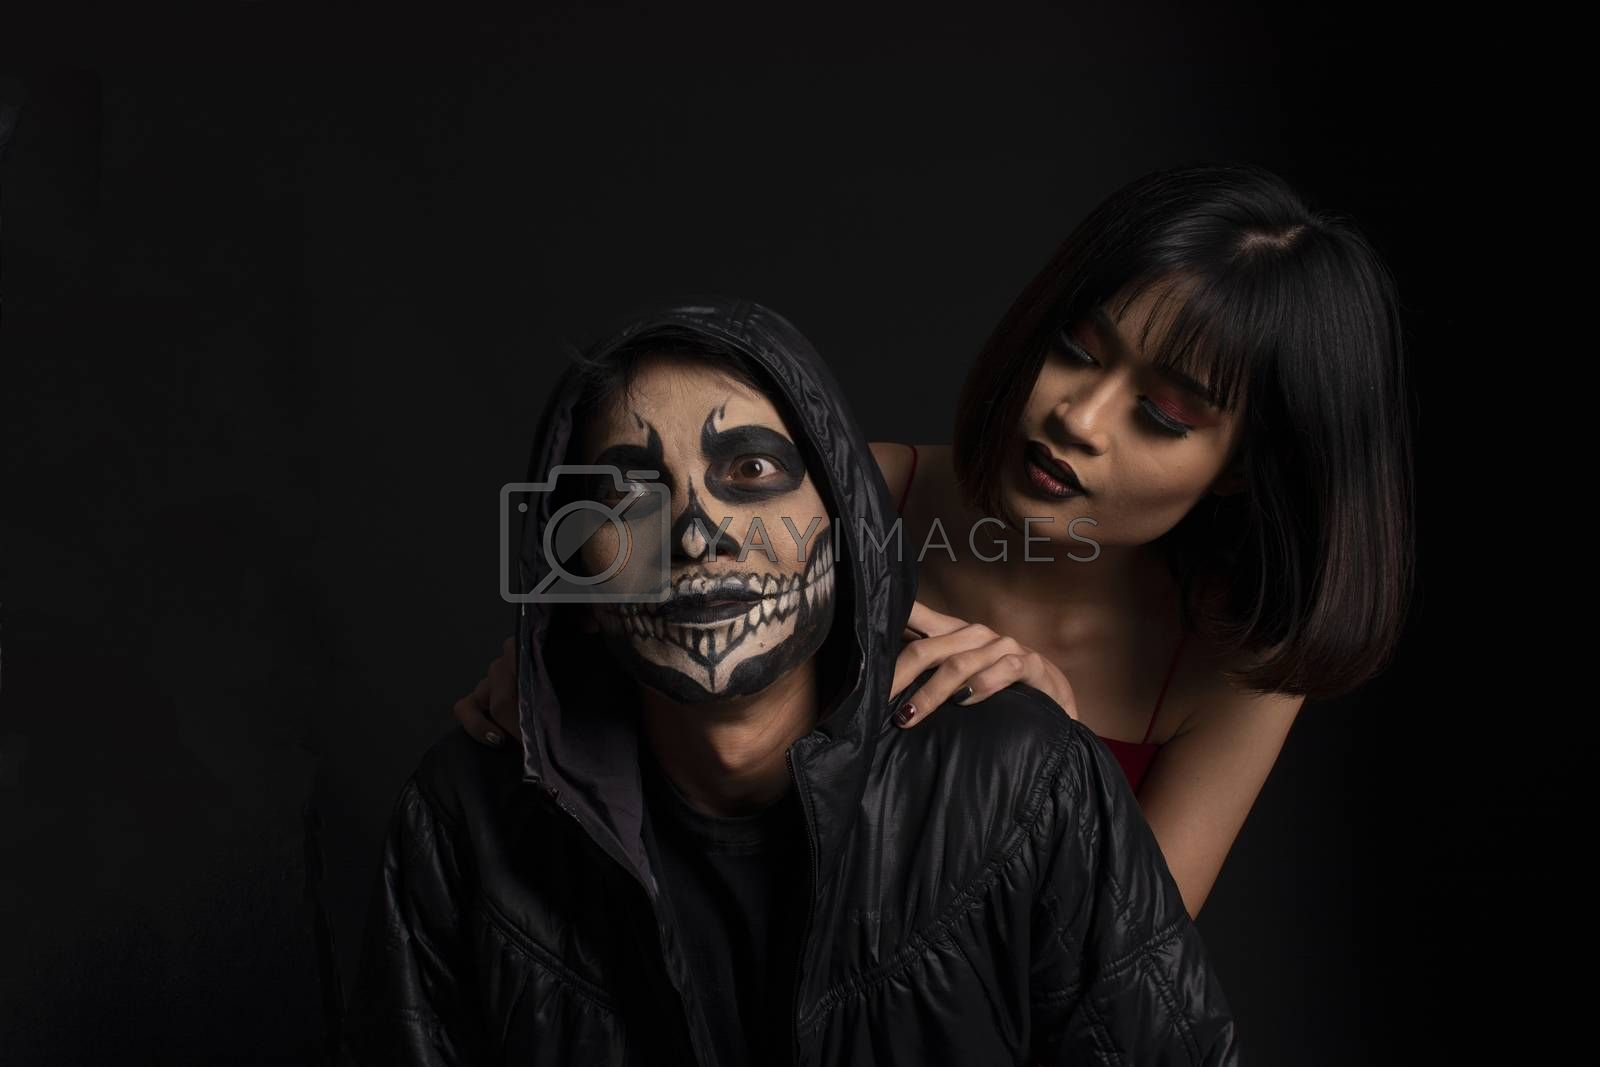 Southeast asian man with skull face makeup and woman on black background, portrait photography